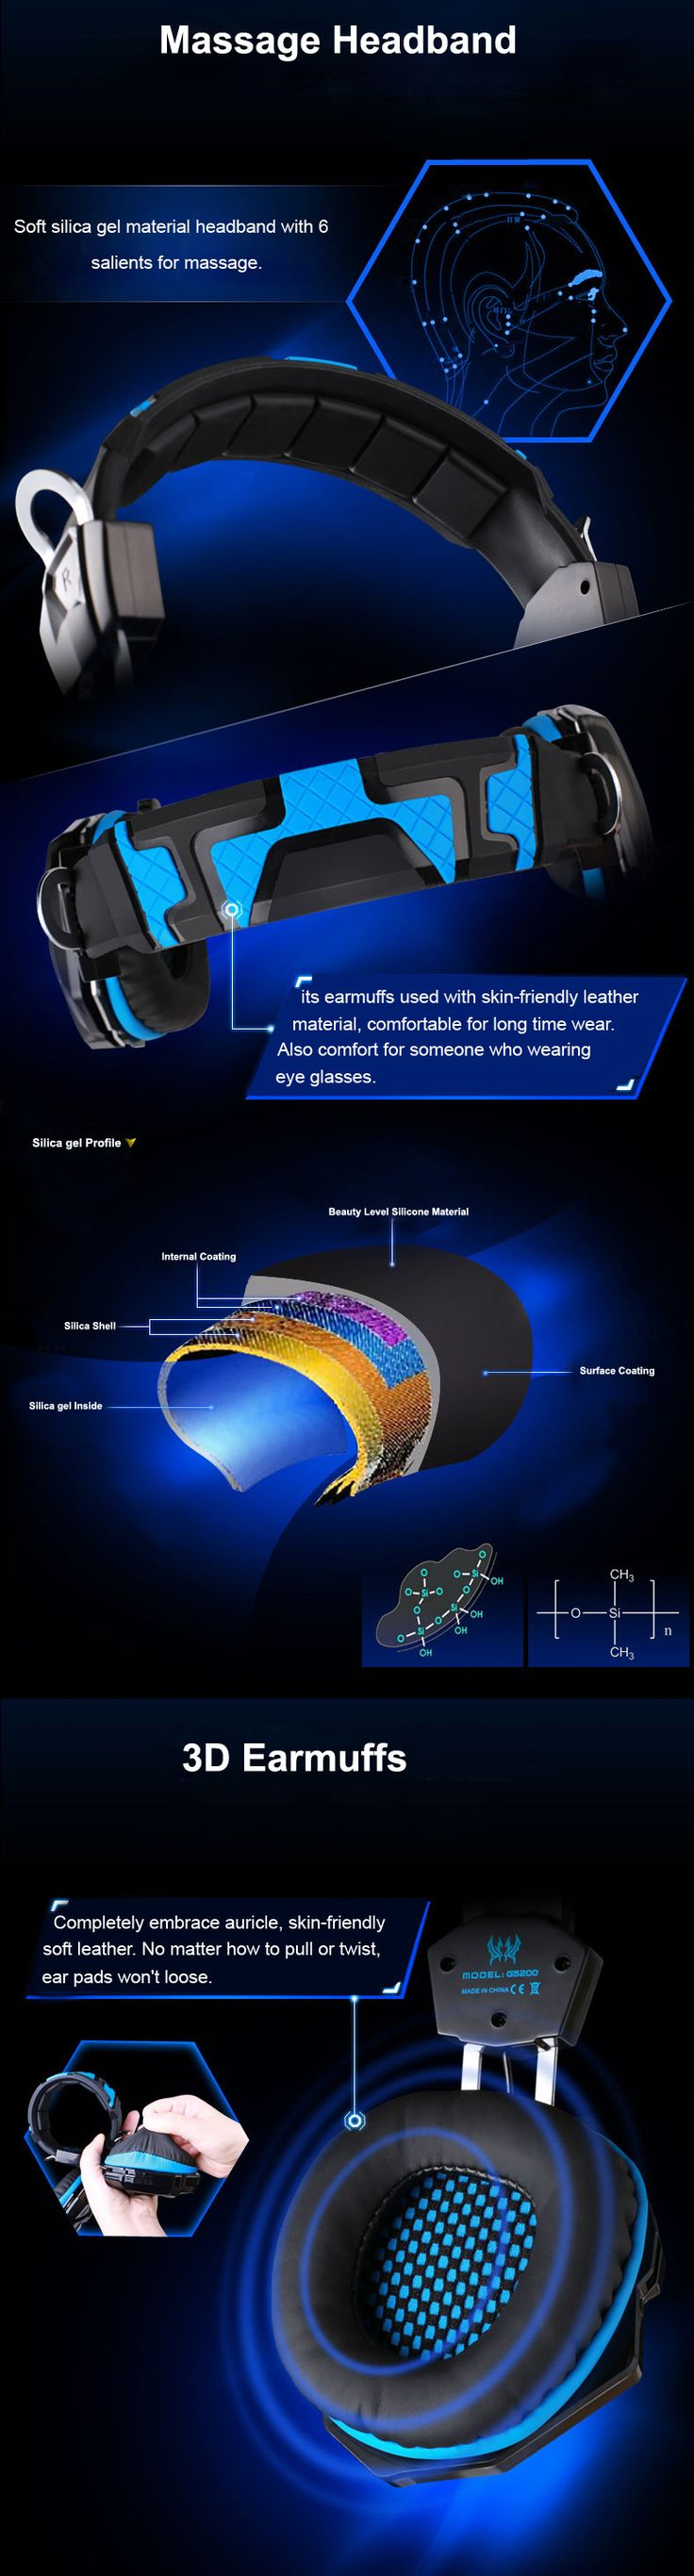 EACH G5200 7.1 Surround Sound Headphone Computer Gaming Casque audio Headset with Mic Vibration LED Light For PS3 PC Gamer | #HeadphonesGaming